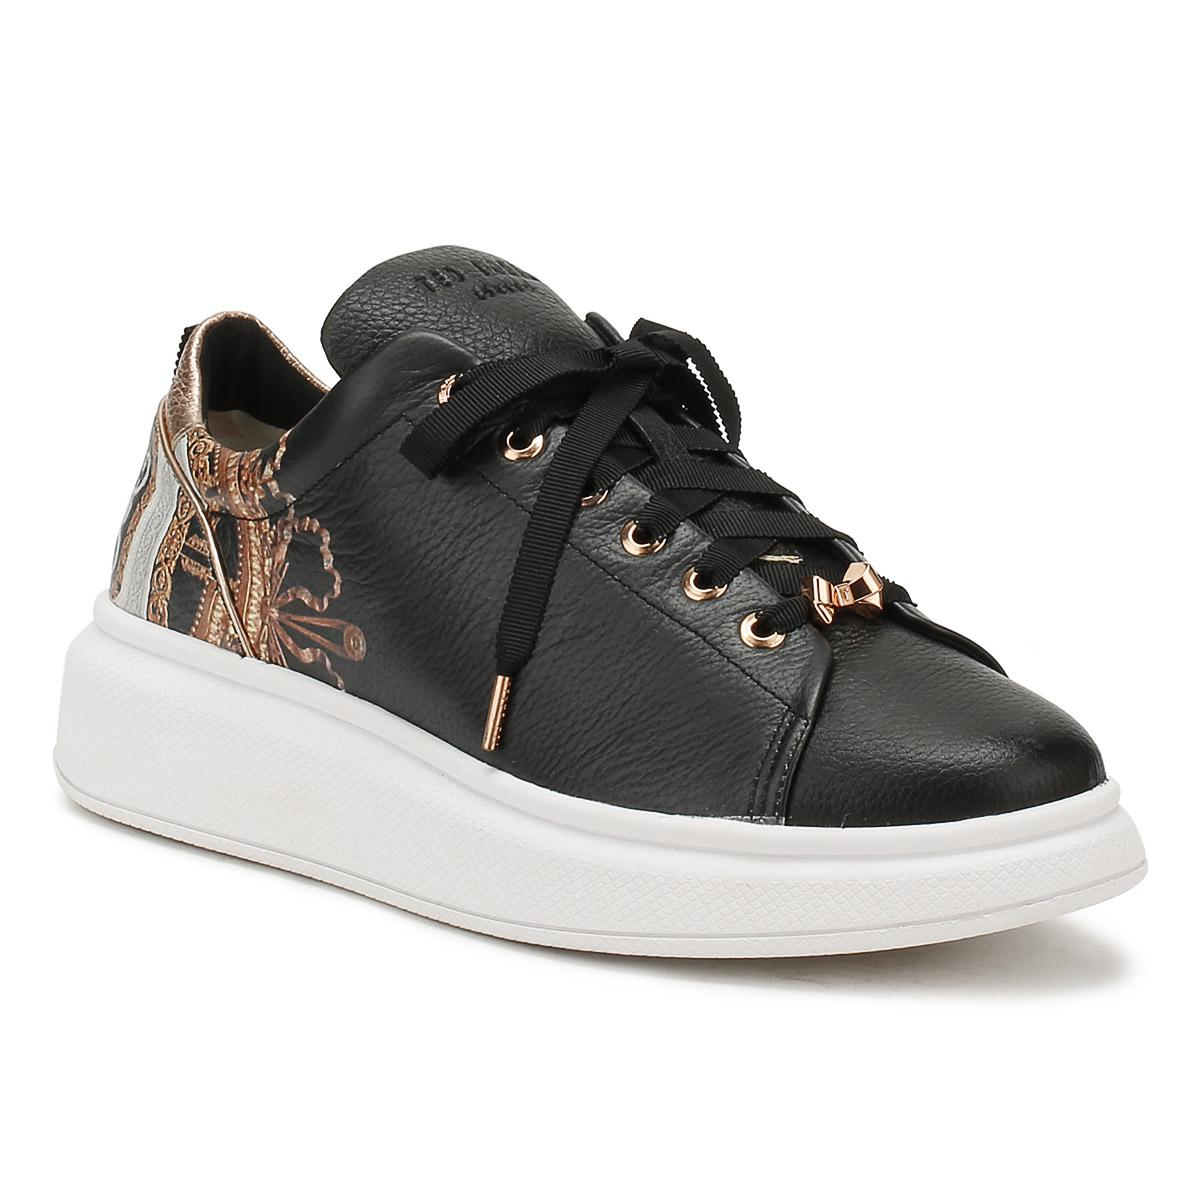 d671ccb3141b Ted Baker Womens Black Versailles Ailbe Trainers in Black - Lyst